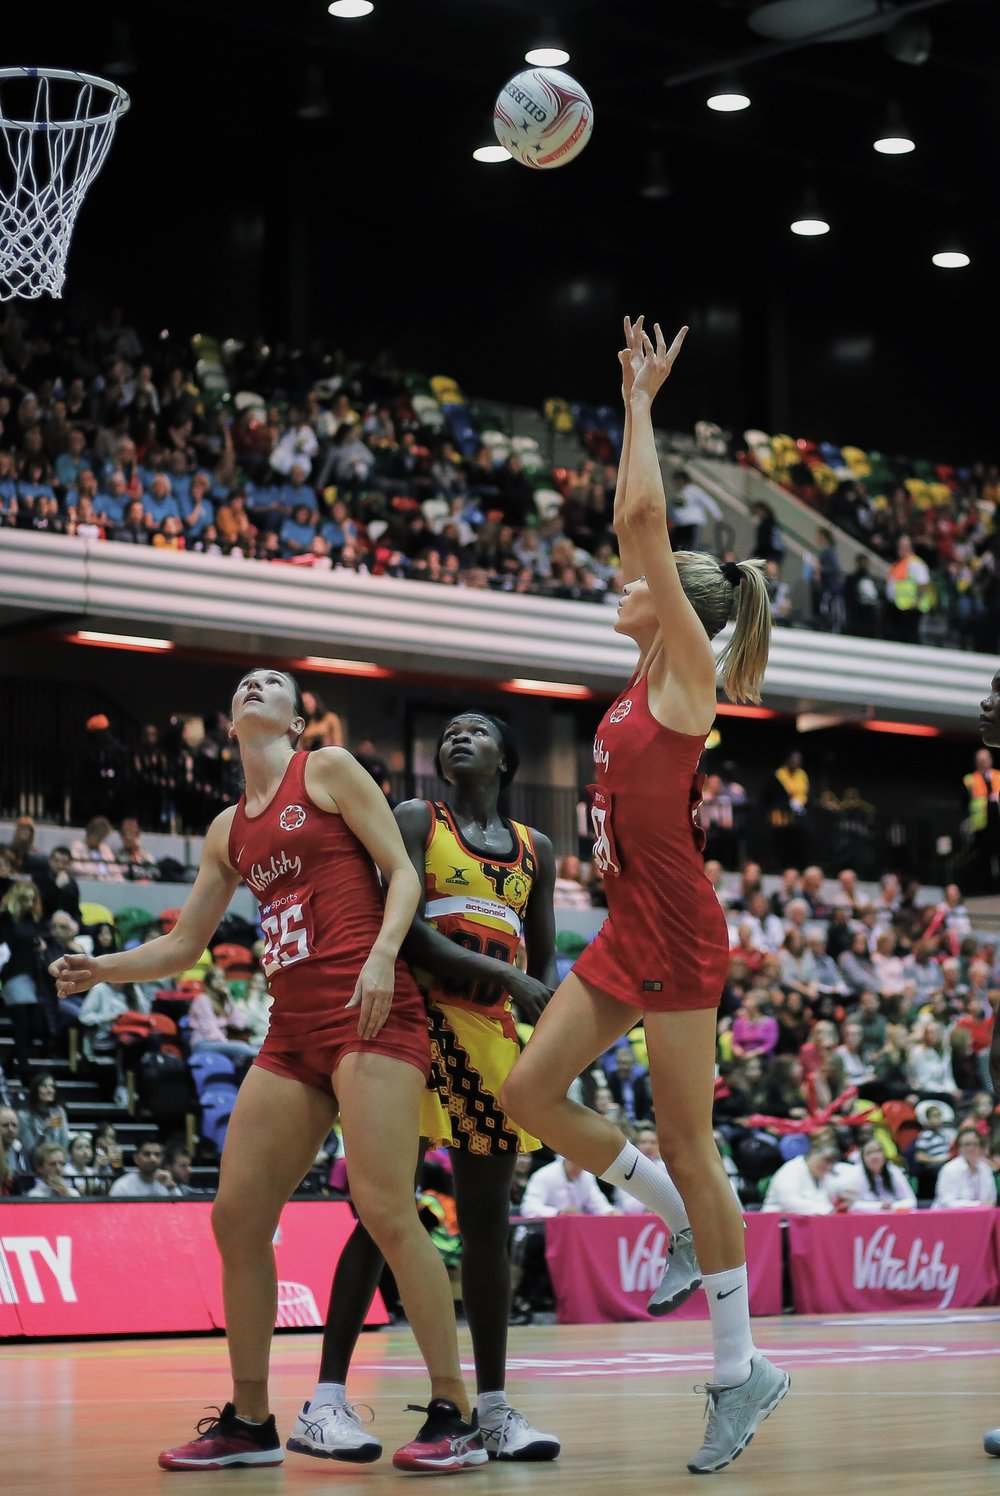 womens-netball-sport-england-uganda-international-series-10.jpg